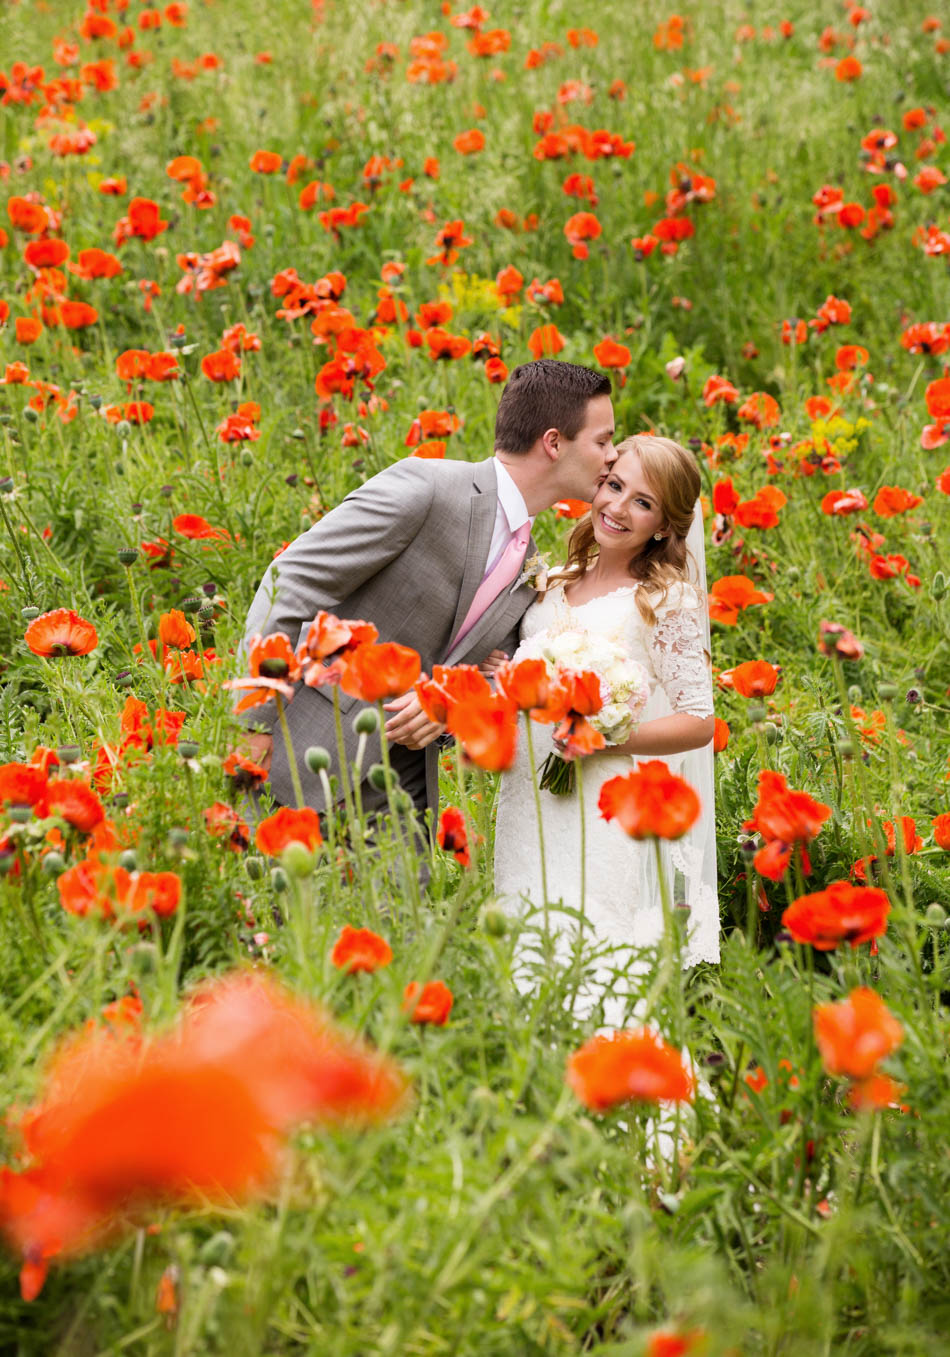 Wedding Flowers Utah County : Tyler shanndy bride groom portraits in mantua davis